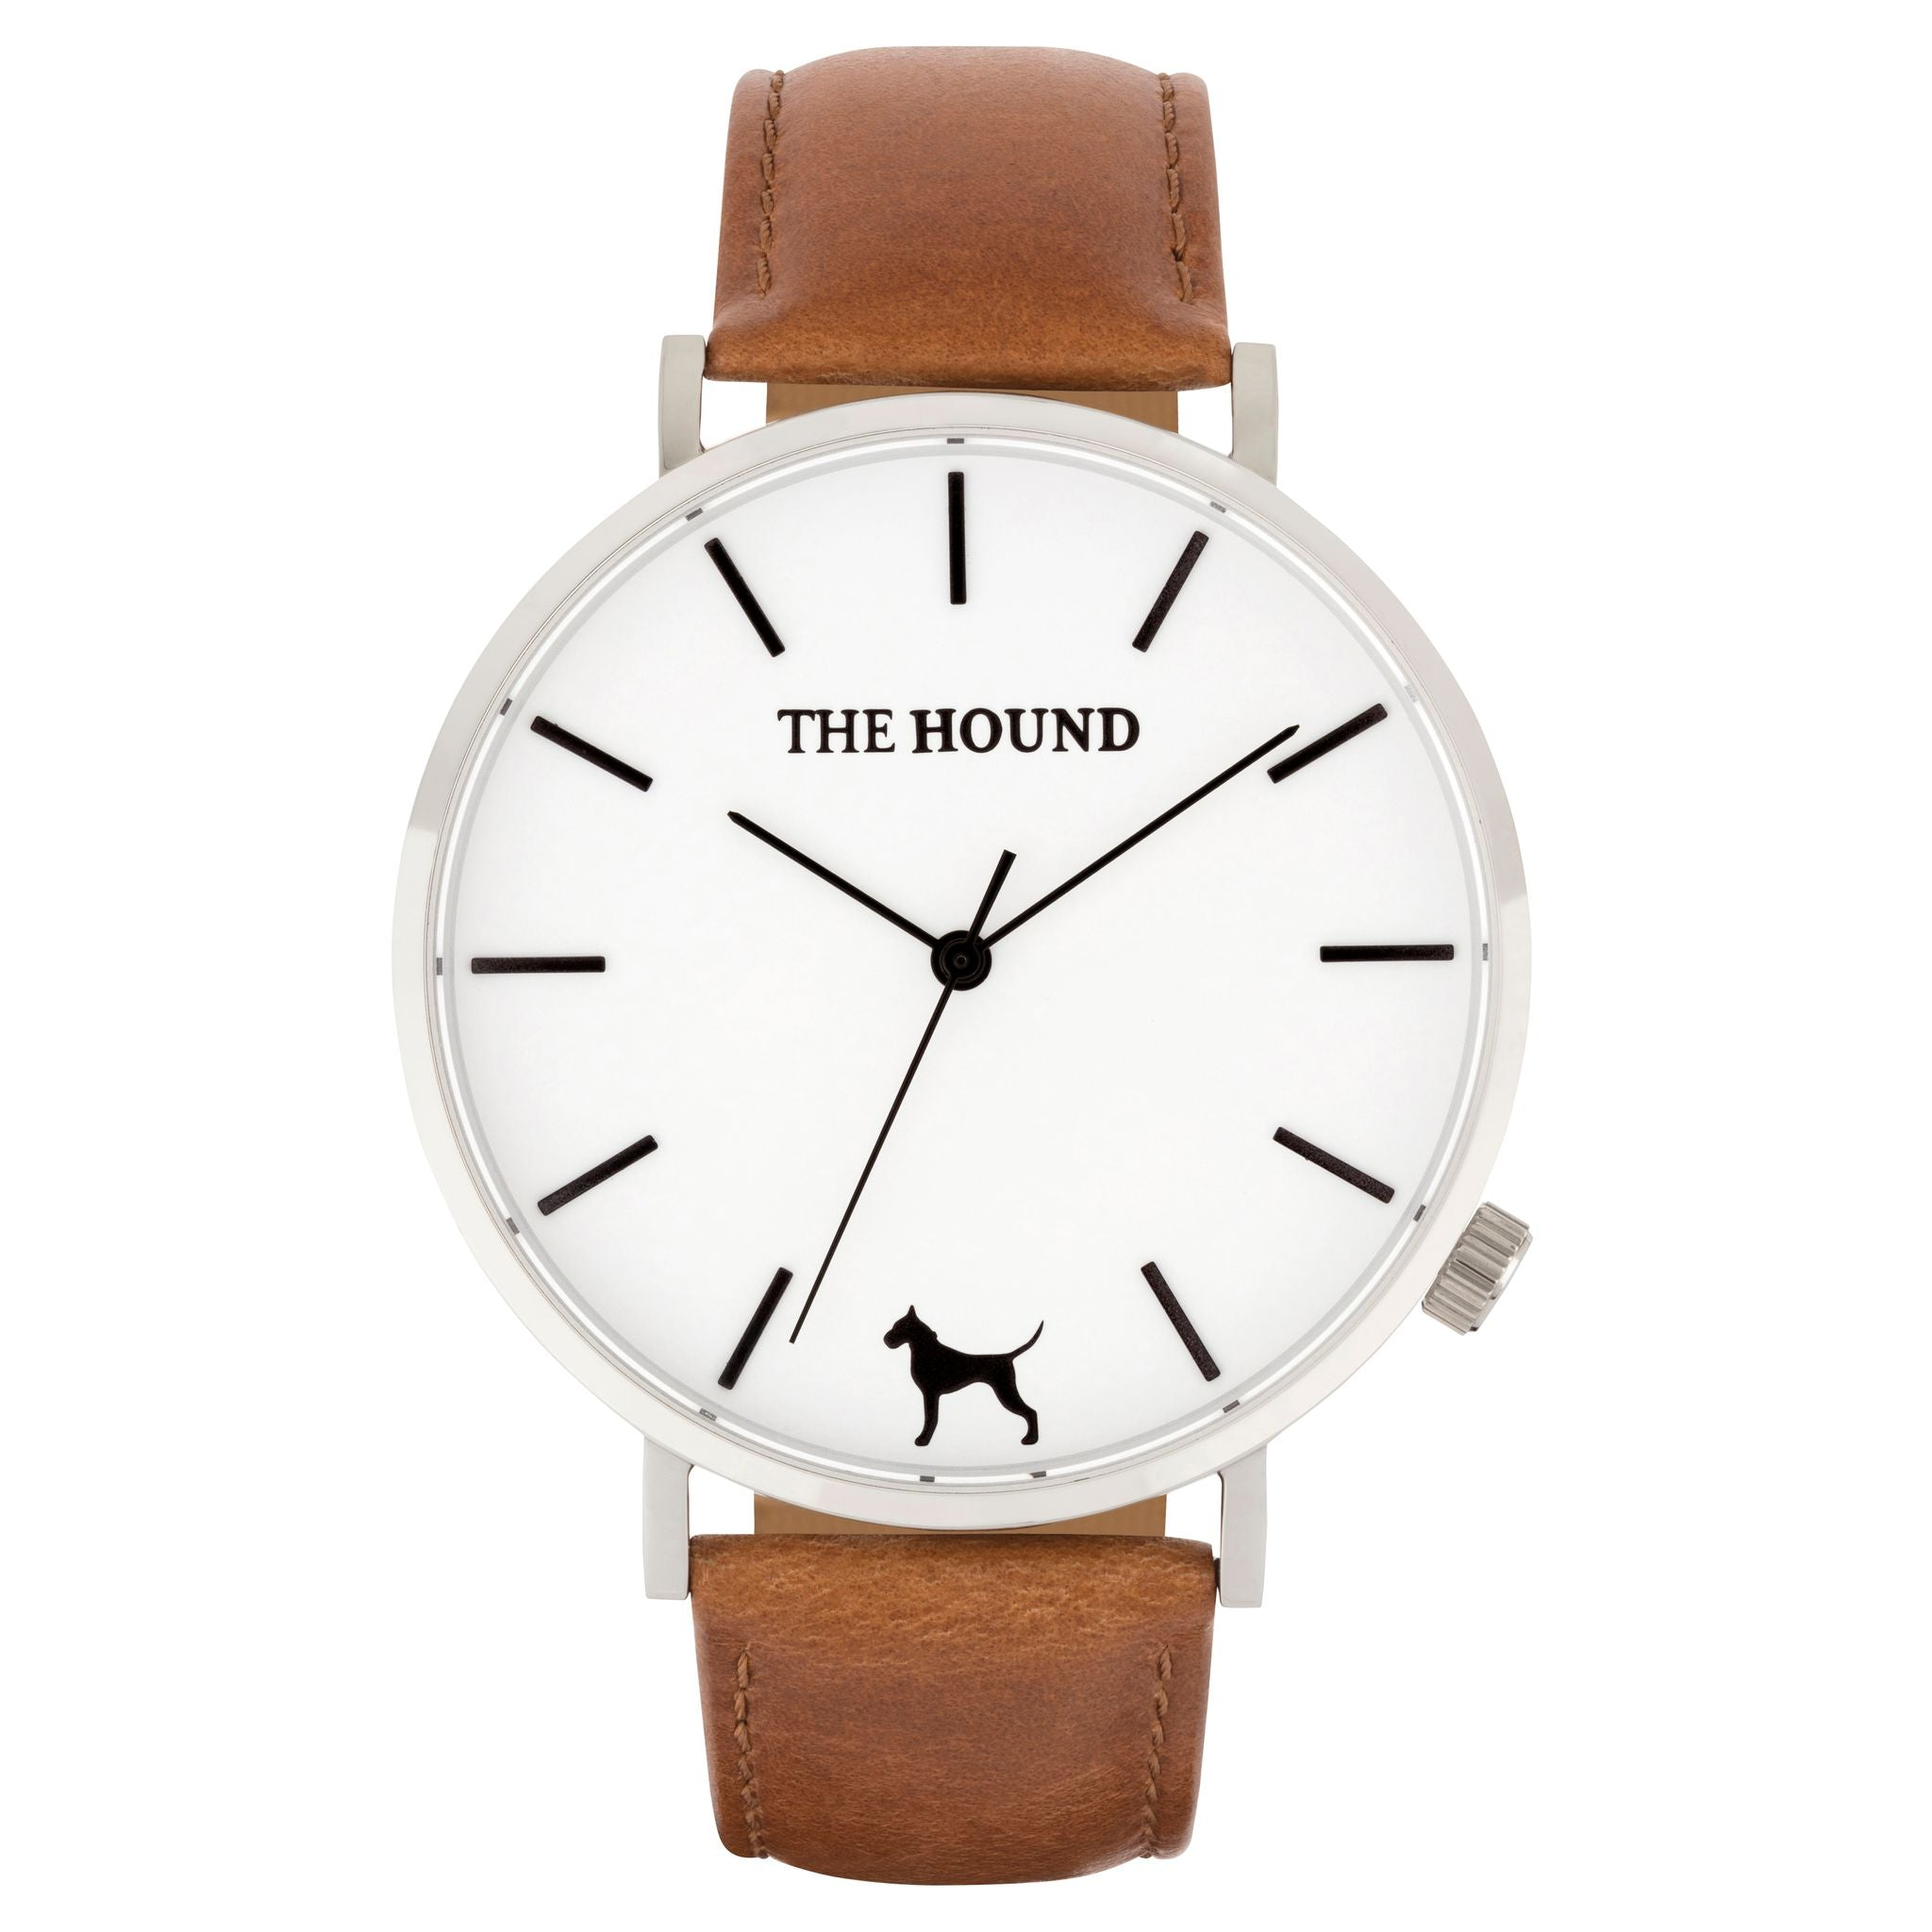 Silver & white face watch with tan leather